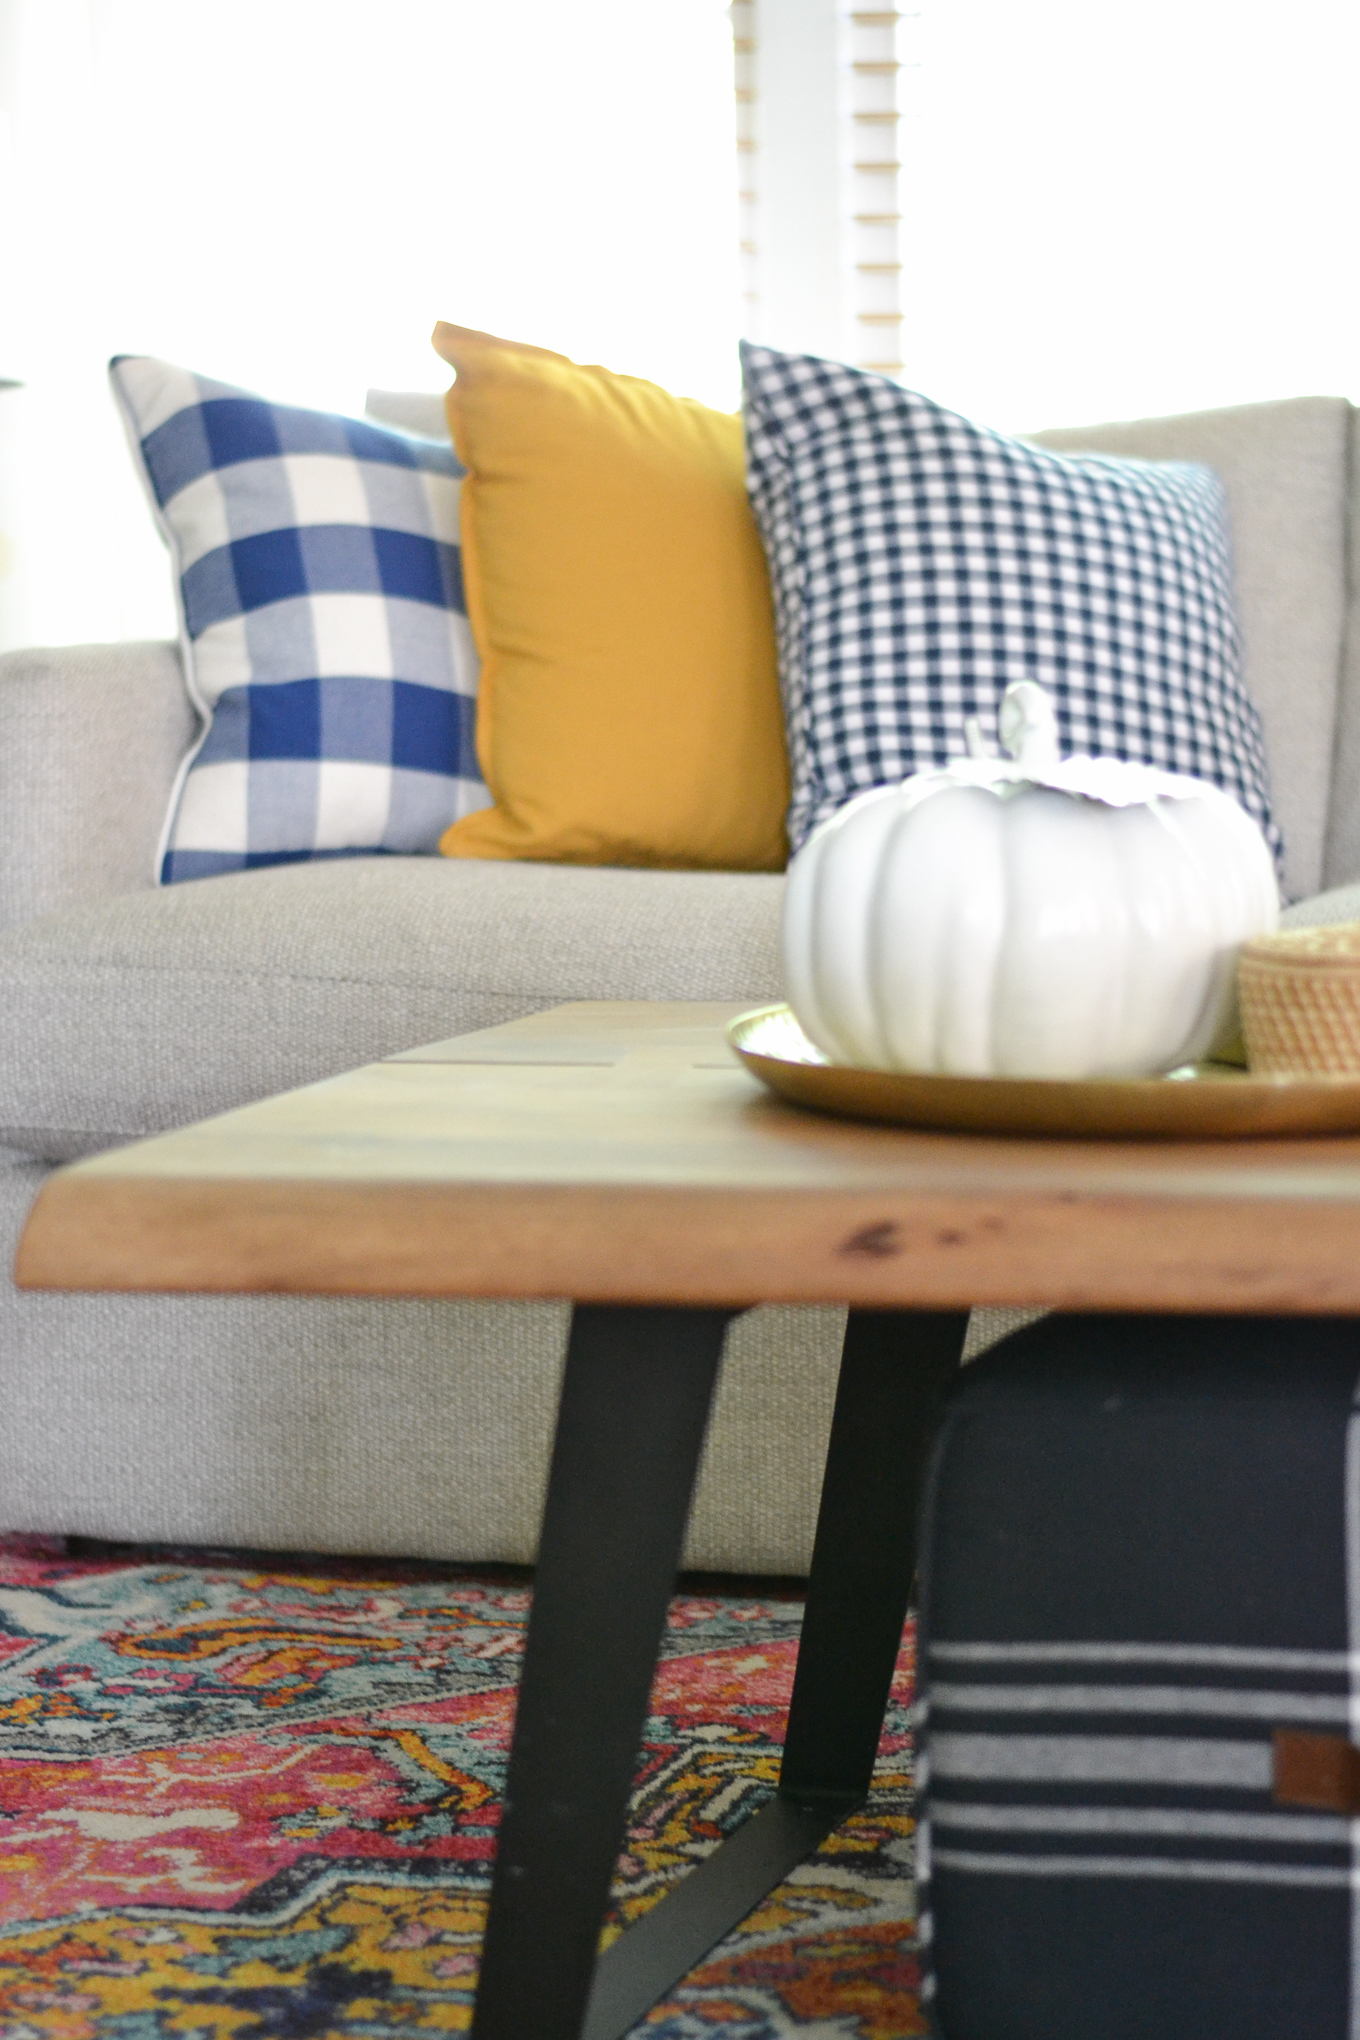 It Is Natural To Want To Warm Up And Cozy Up Your Living Space As We Head  Into Fall. There Are Five Living Room Decorating Ideas For Fall That You  Can ...